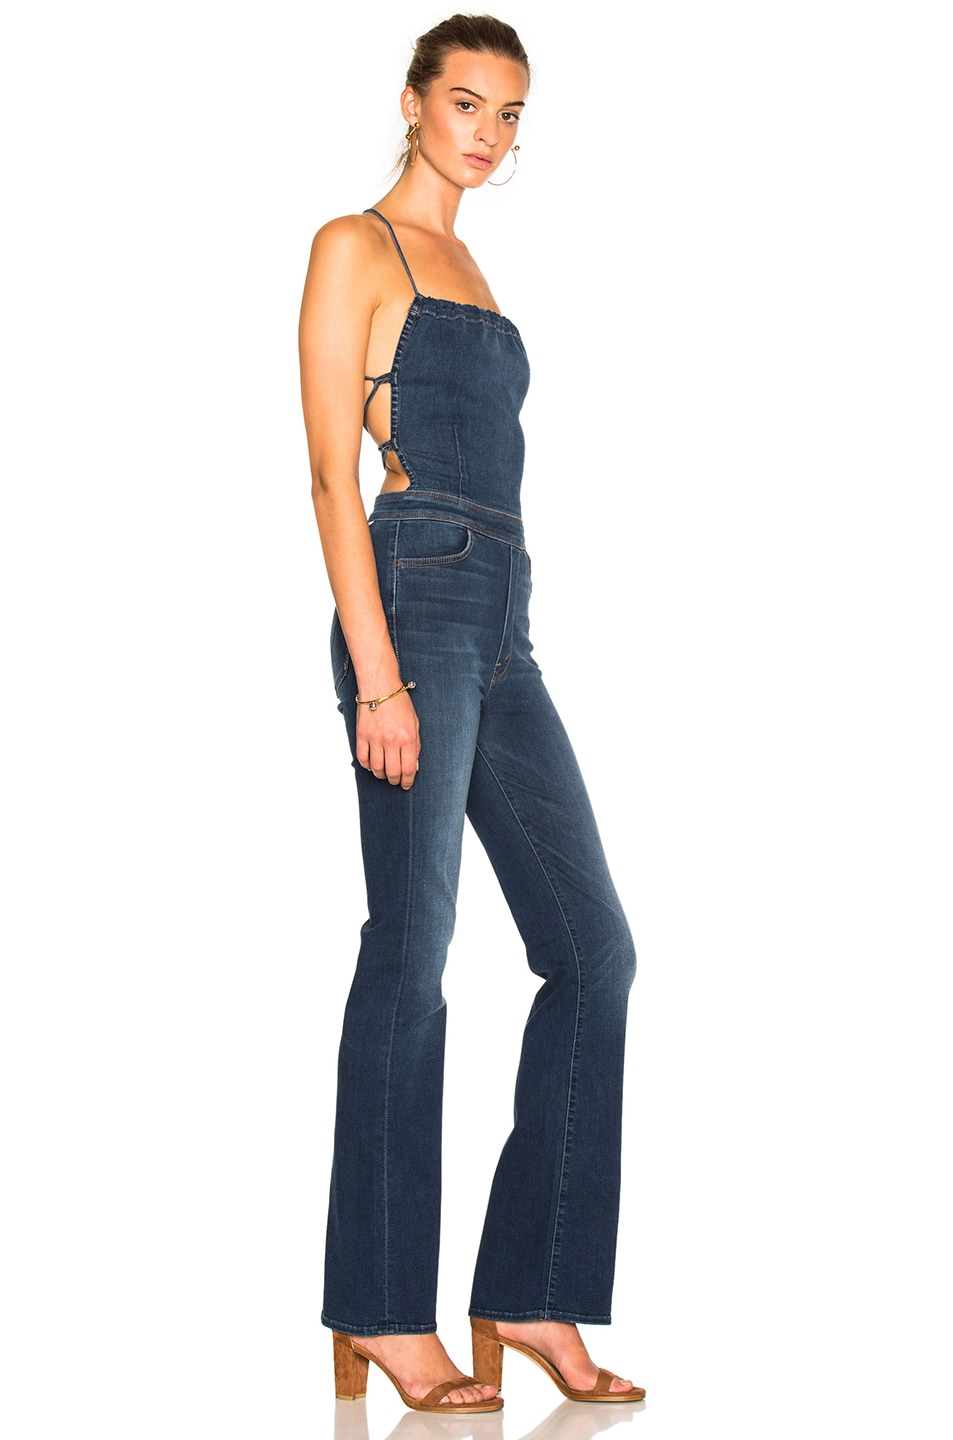 da4409fc956 Image 4 of MOTHER Tie Back Jumpsuit in Power Play